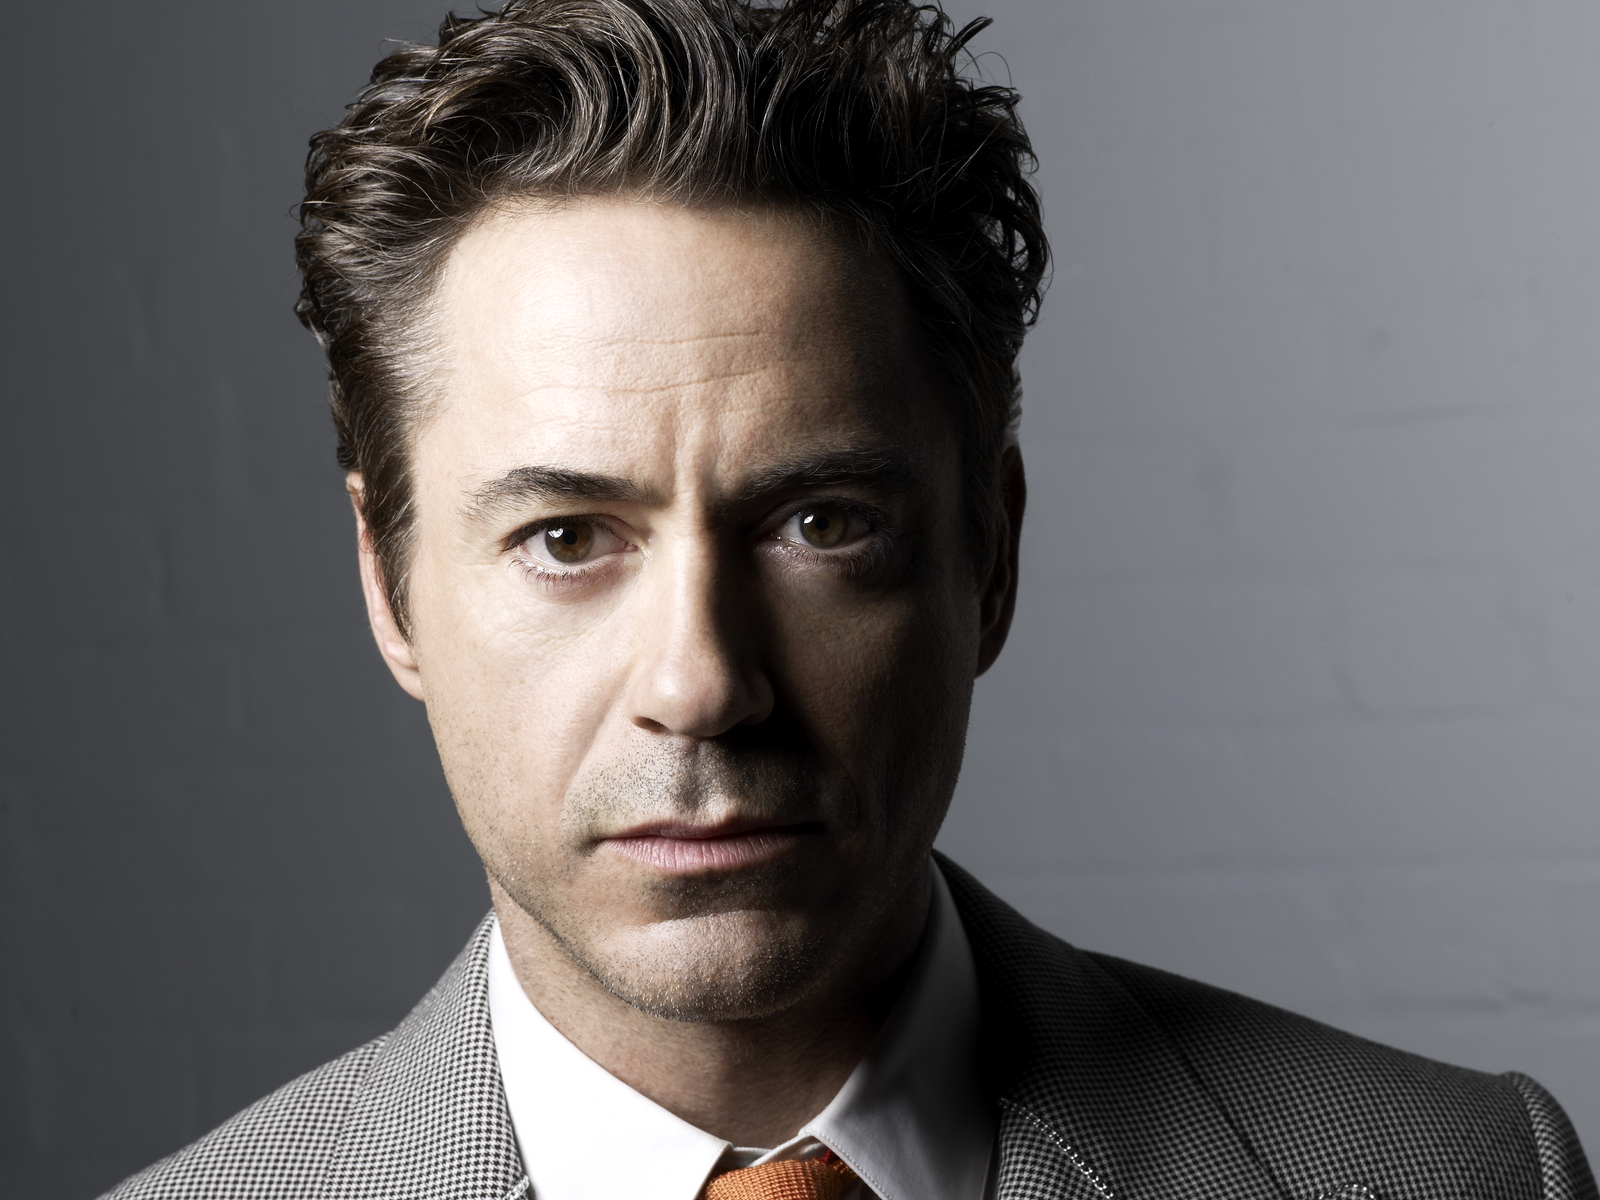 robert-downey-jr-photo.jpg